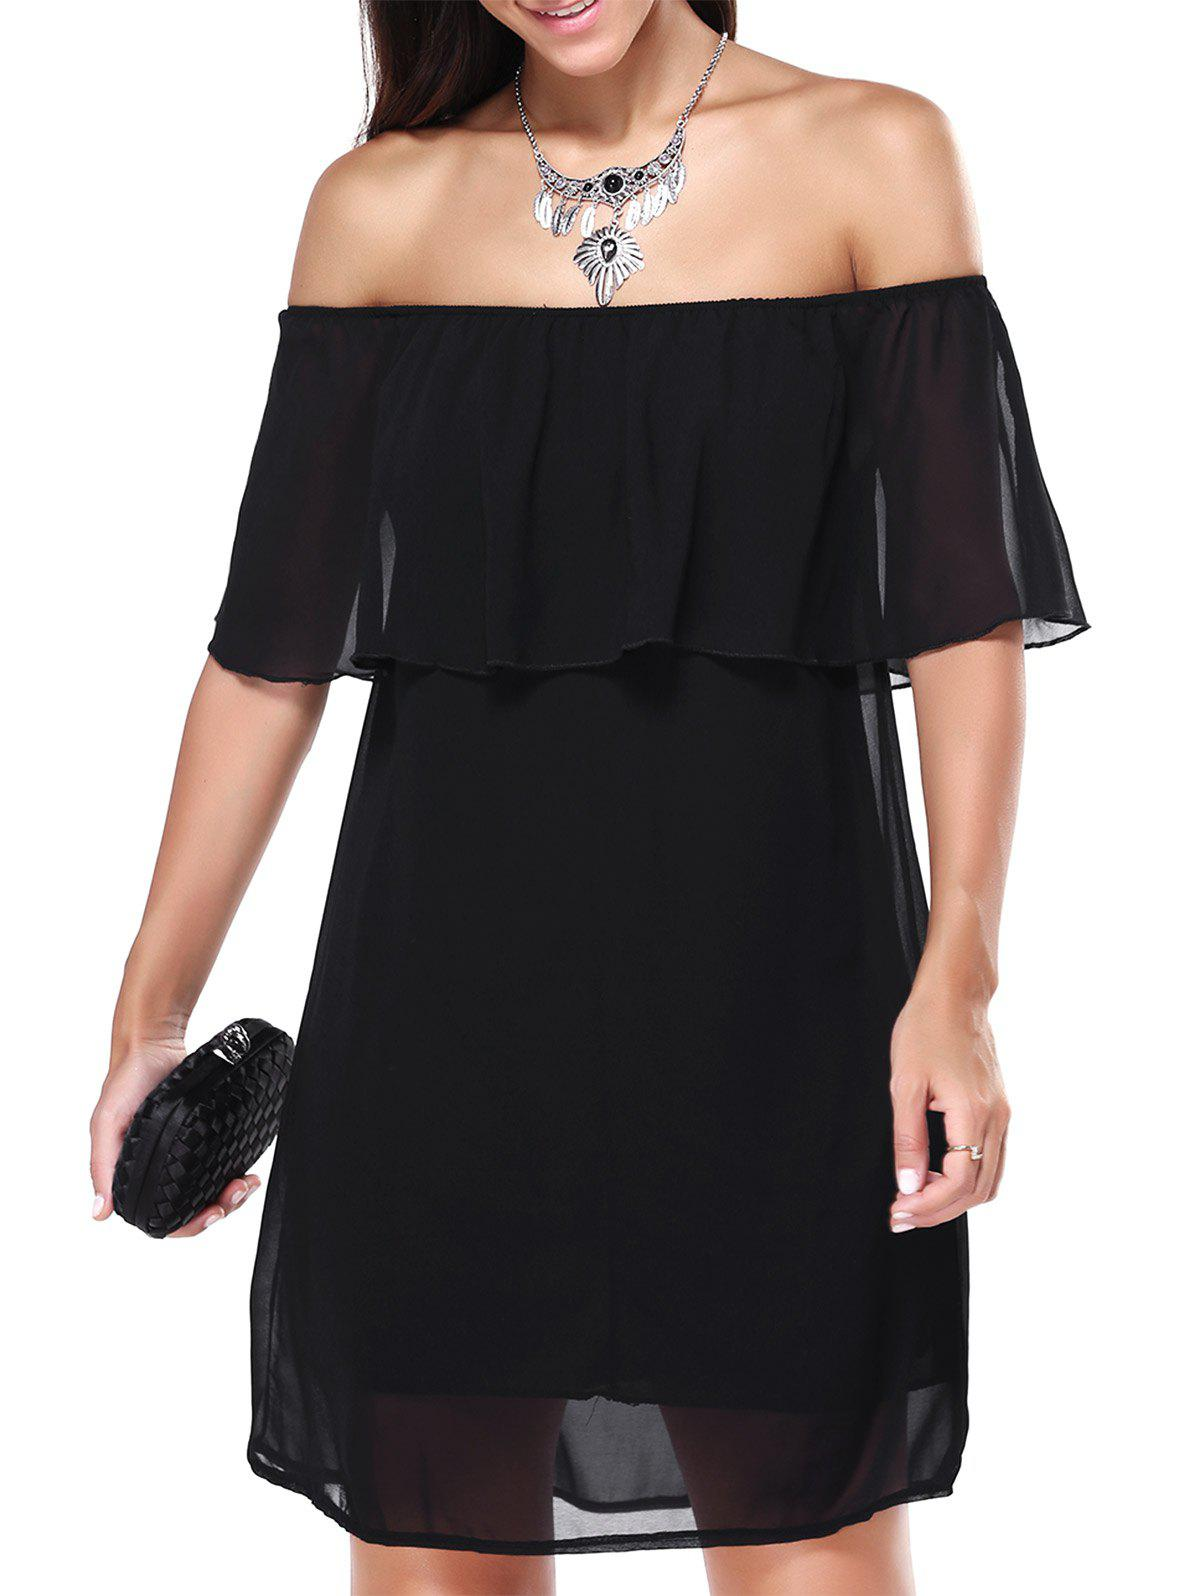 Off The Shoulder Overlay Chiffon Dress - BLACK L